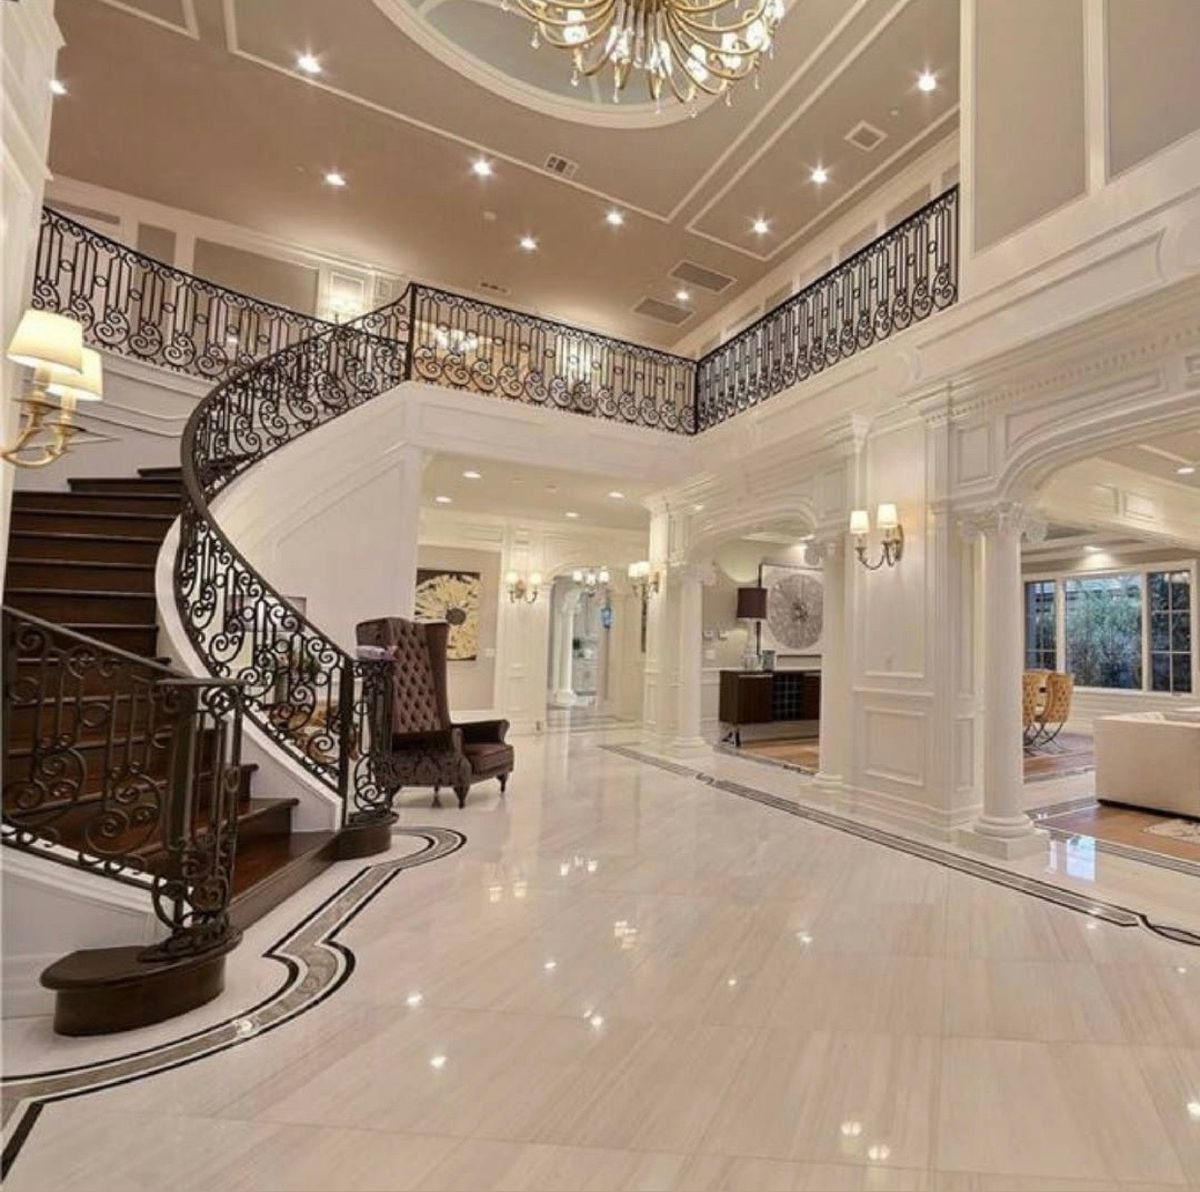 Pin By Rere Beauty On Dream House Dream House Decor Luxury Homes Dream Houses House Design